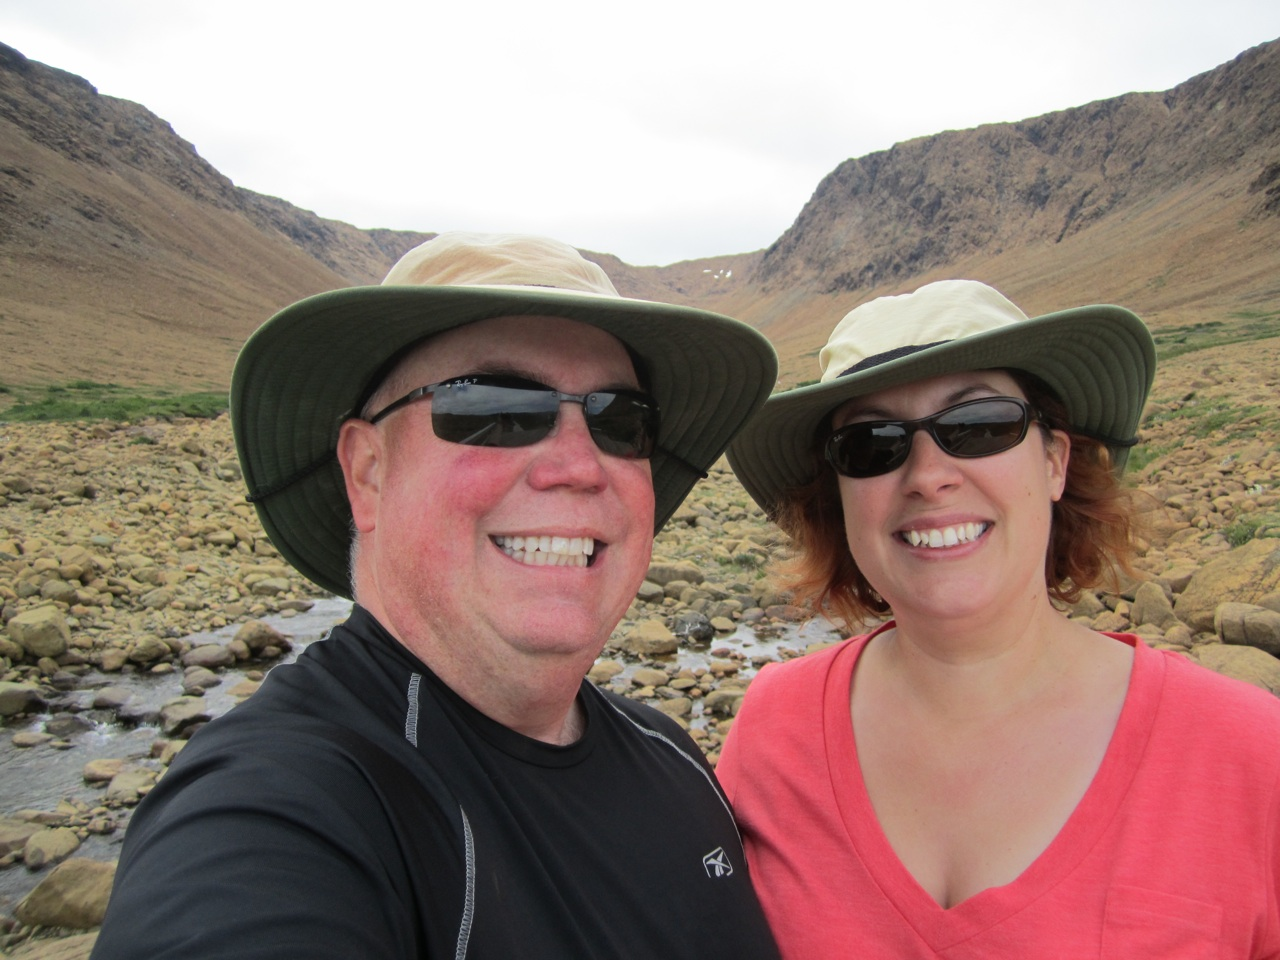 David & Brenda Hiking The Tablelands Trail